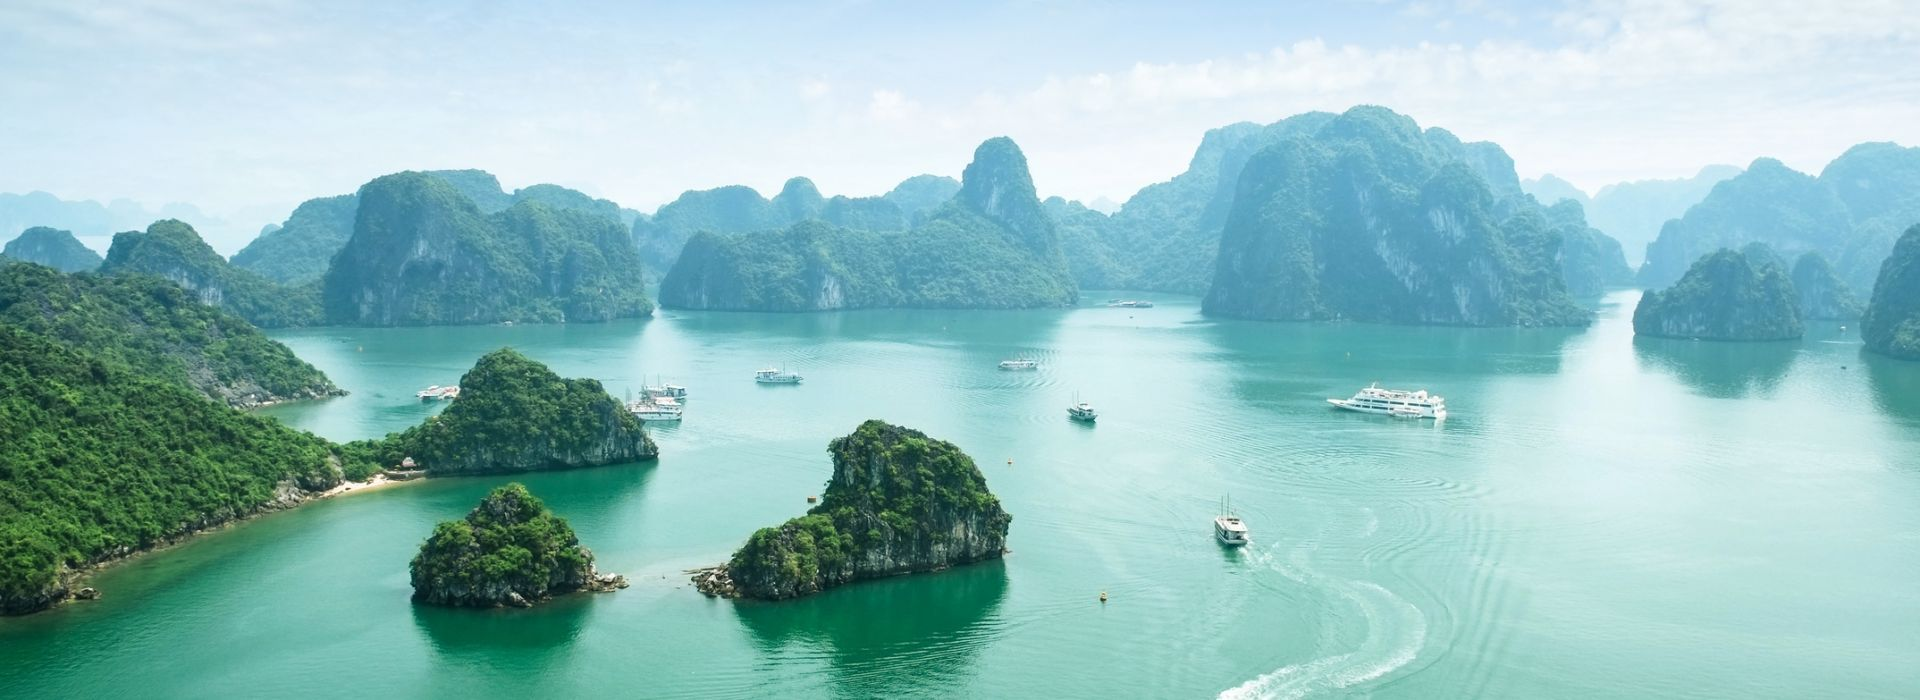 Culture shows and excursions Tours in Vietnam